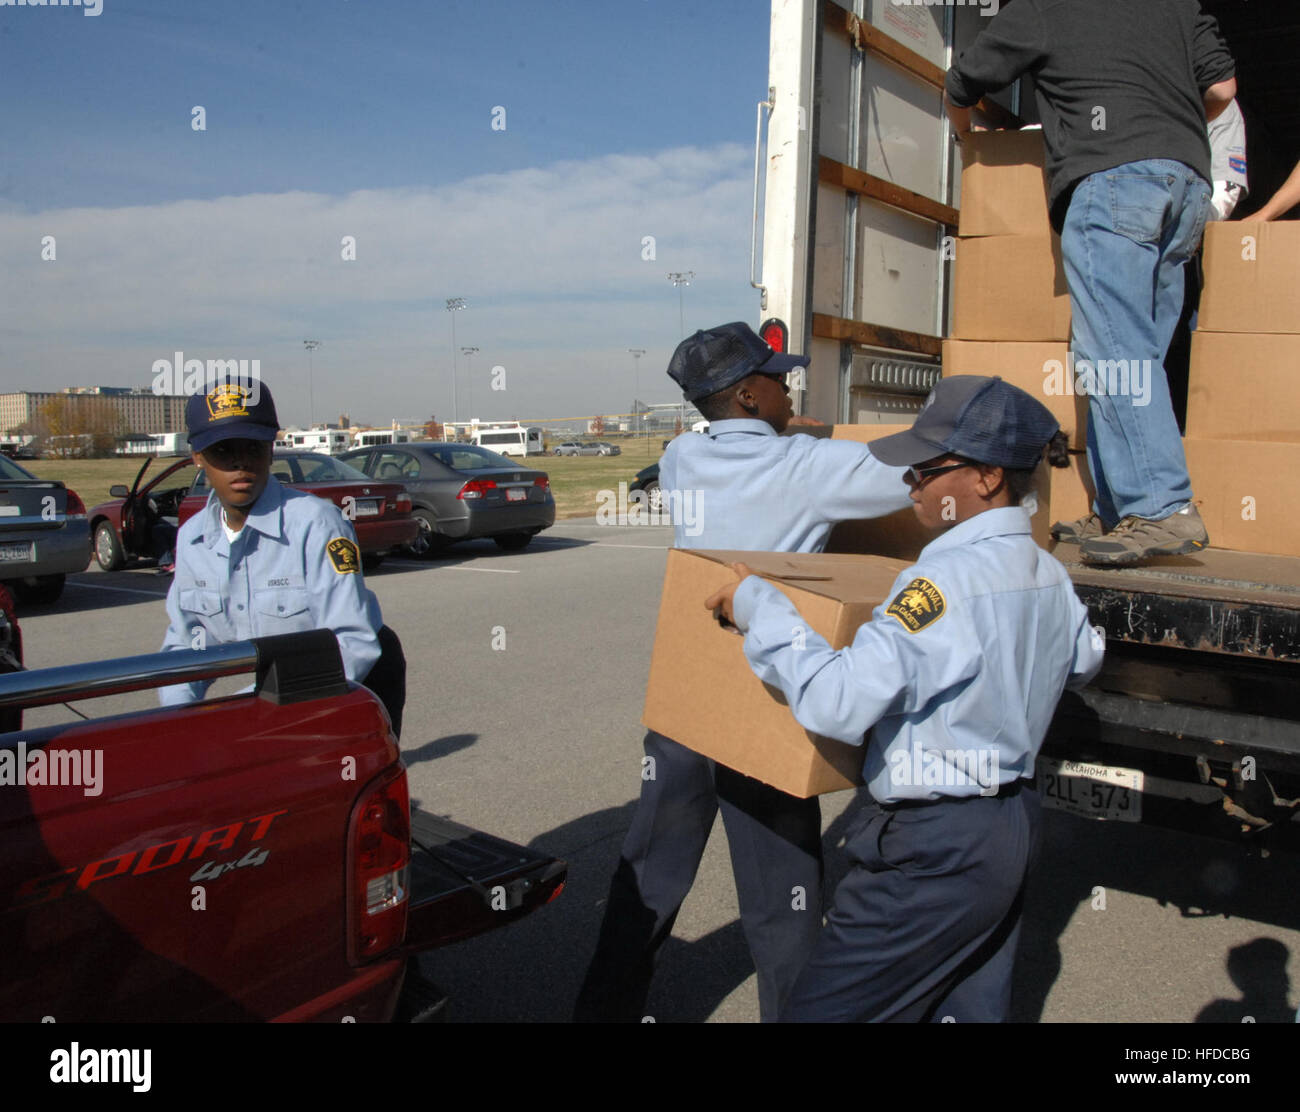 101120-N-8732C-011  WASHINGTON (Nov. 20, 2010) – U.S. Naval Sea Cadet Kendall Kent moves a box of food from a delivery Stock Photo